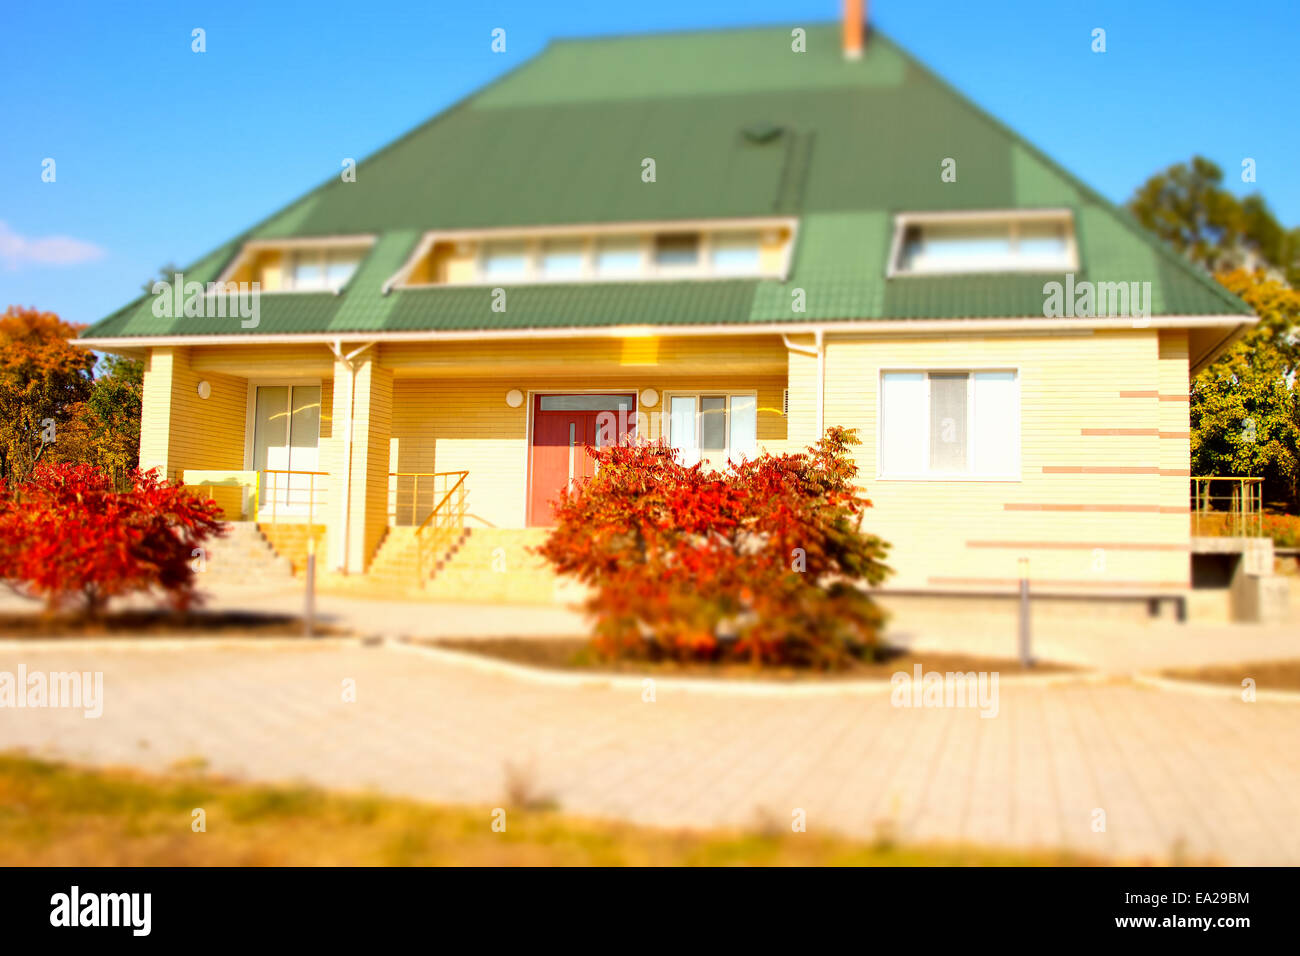 Dormer Windows Bungalow Stockfotos & Dormer Windows Bungalow Bilder ...